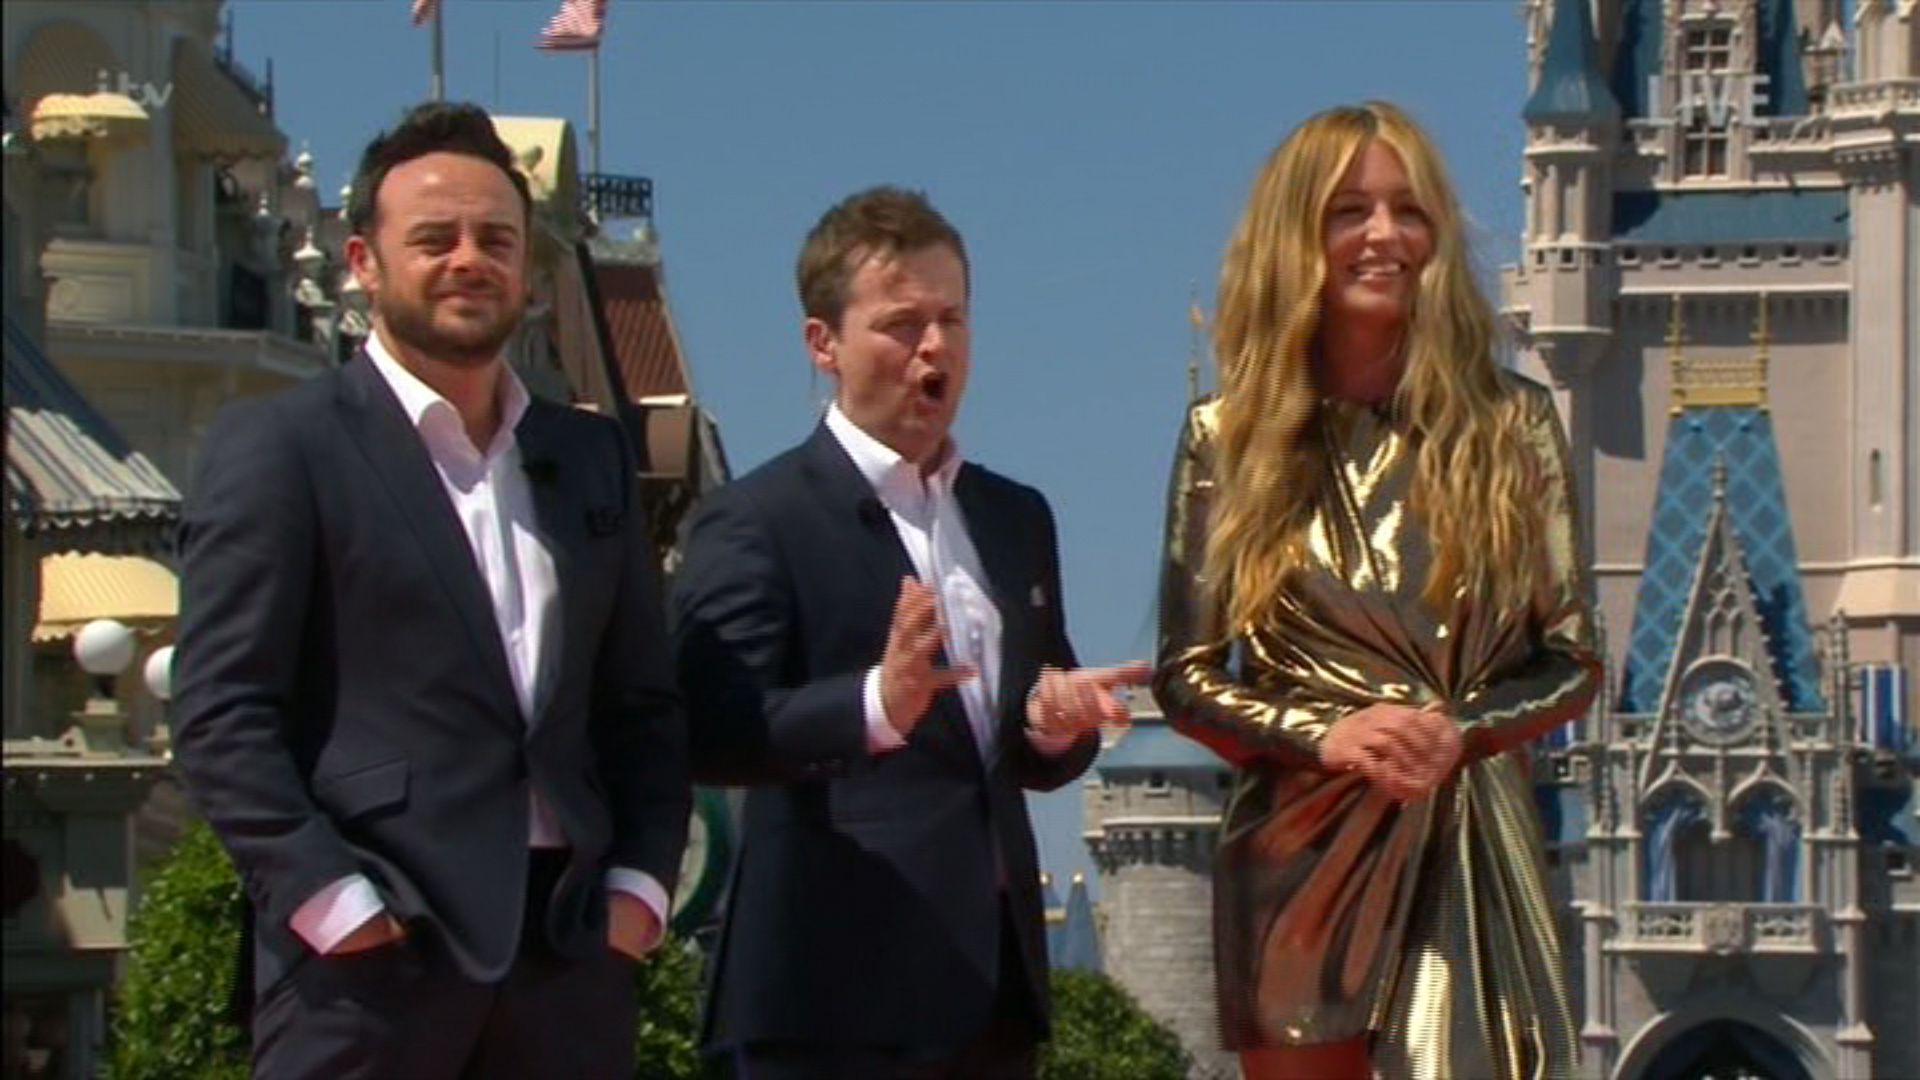 Cat Deeley and Ant and Dec CONFIRM SM:TV reunion as they reunite on Saturday Night Takeaway